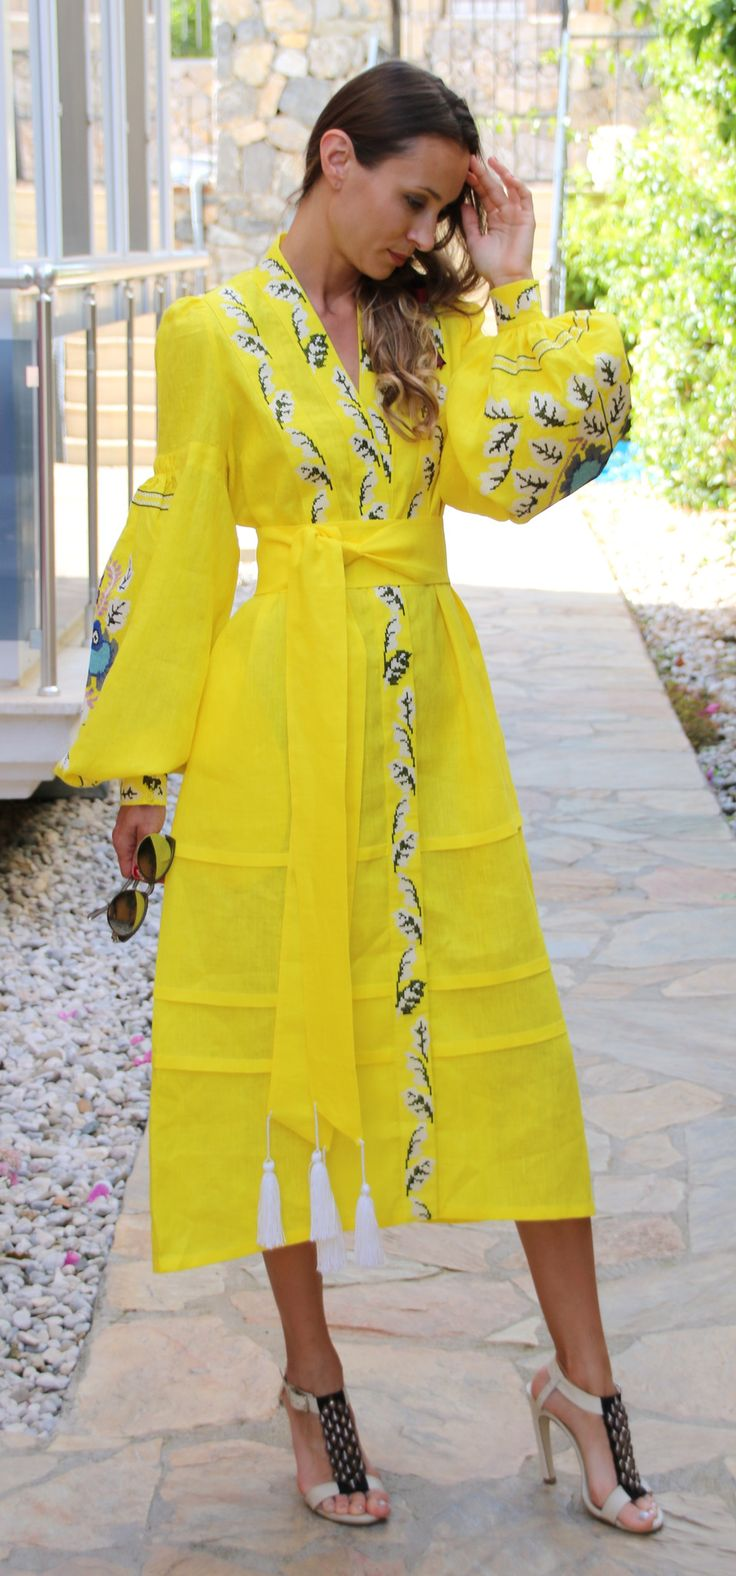 Bright yellow Yulia Magdich style wrap vyshyvanka linen MIDI dress multi-color embroidery size XS-XXL MYD001-0120